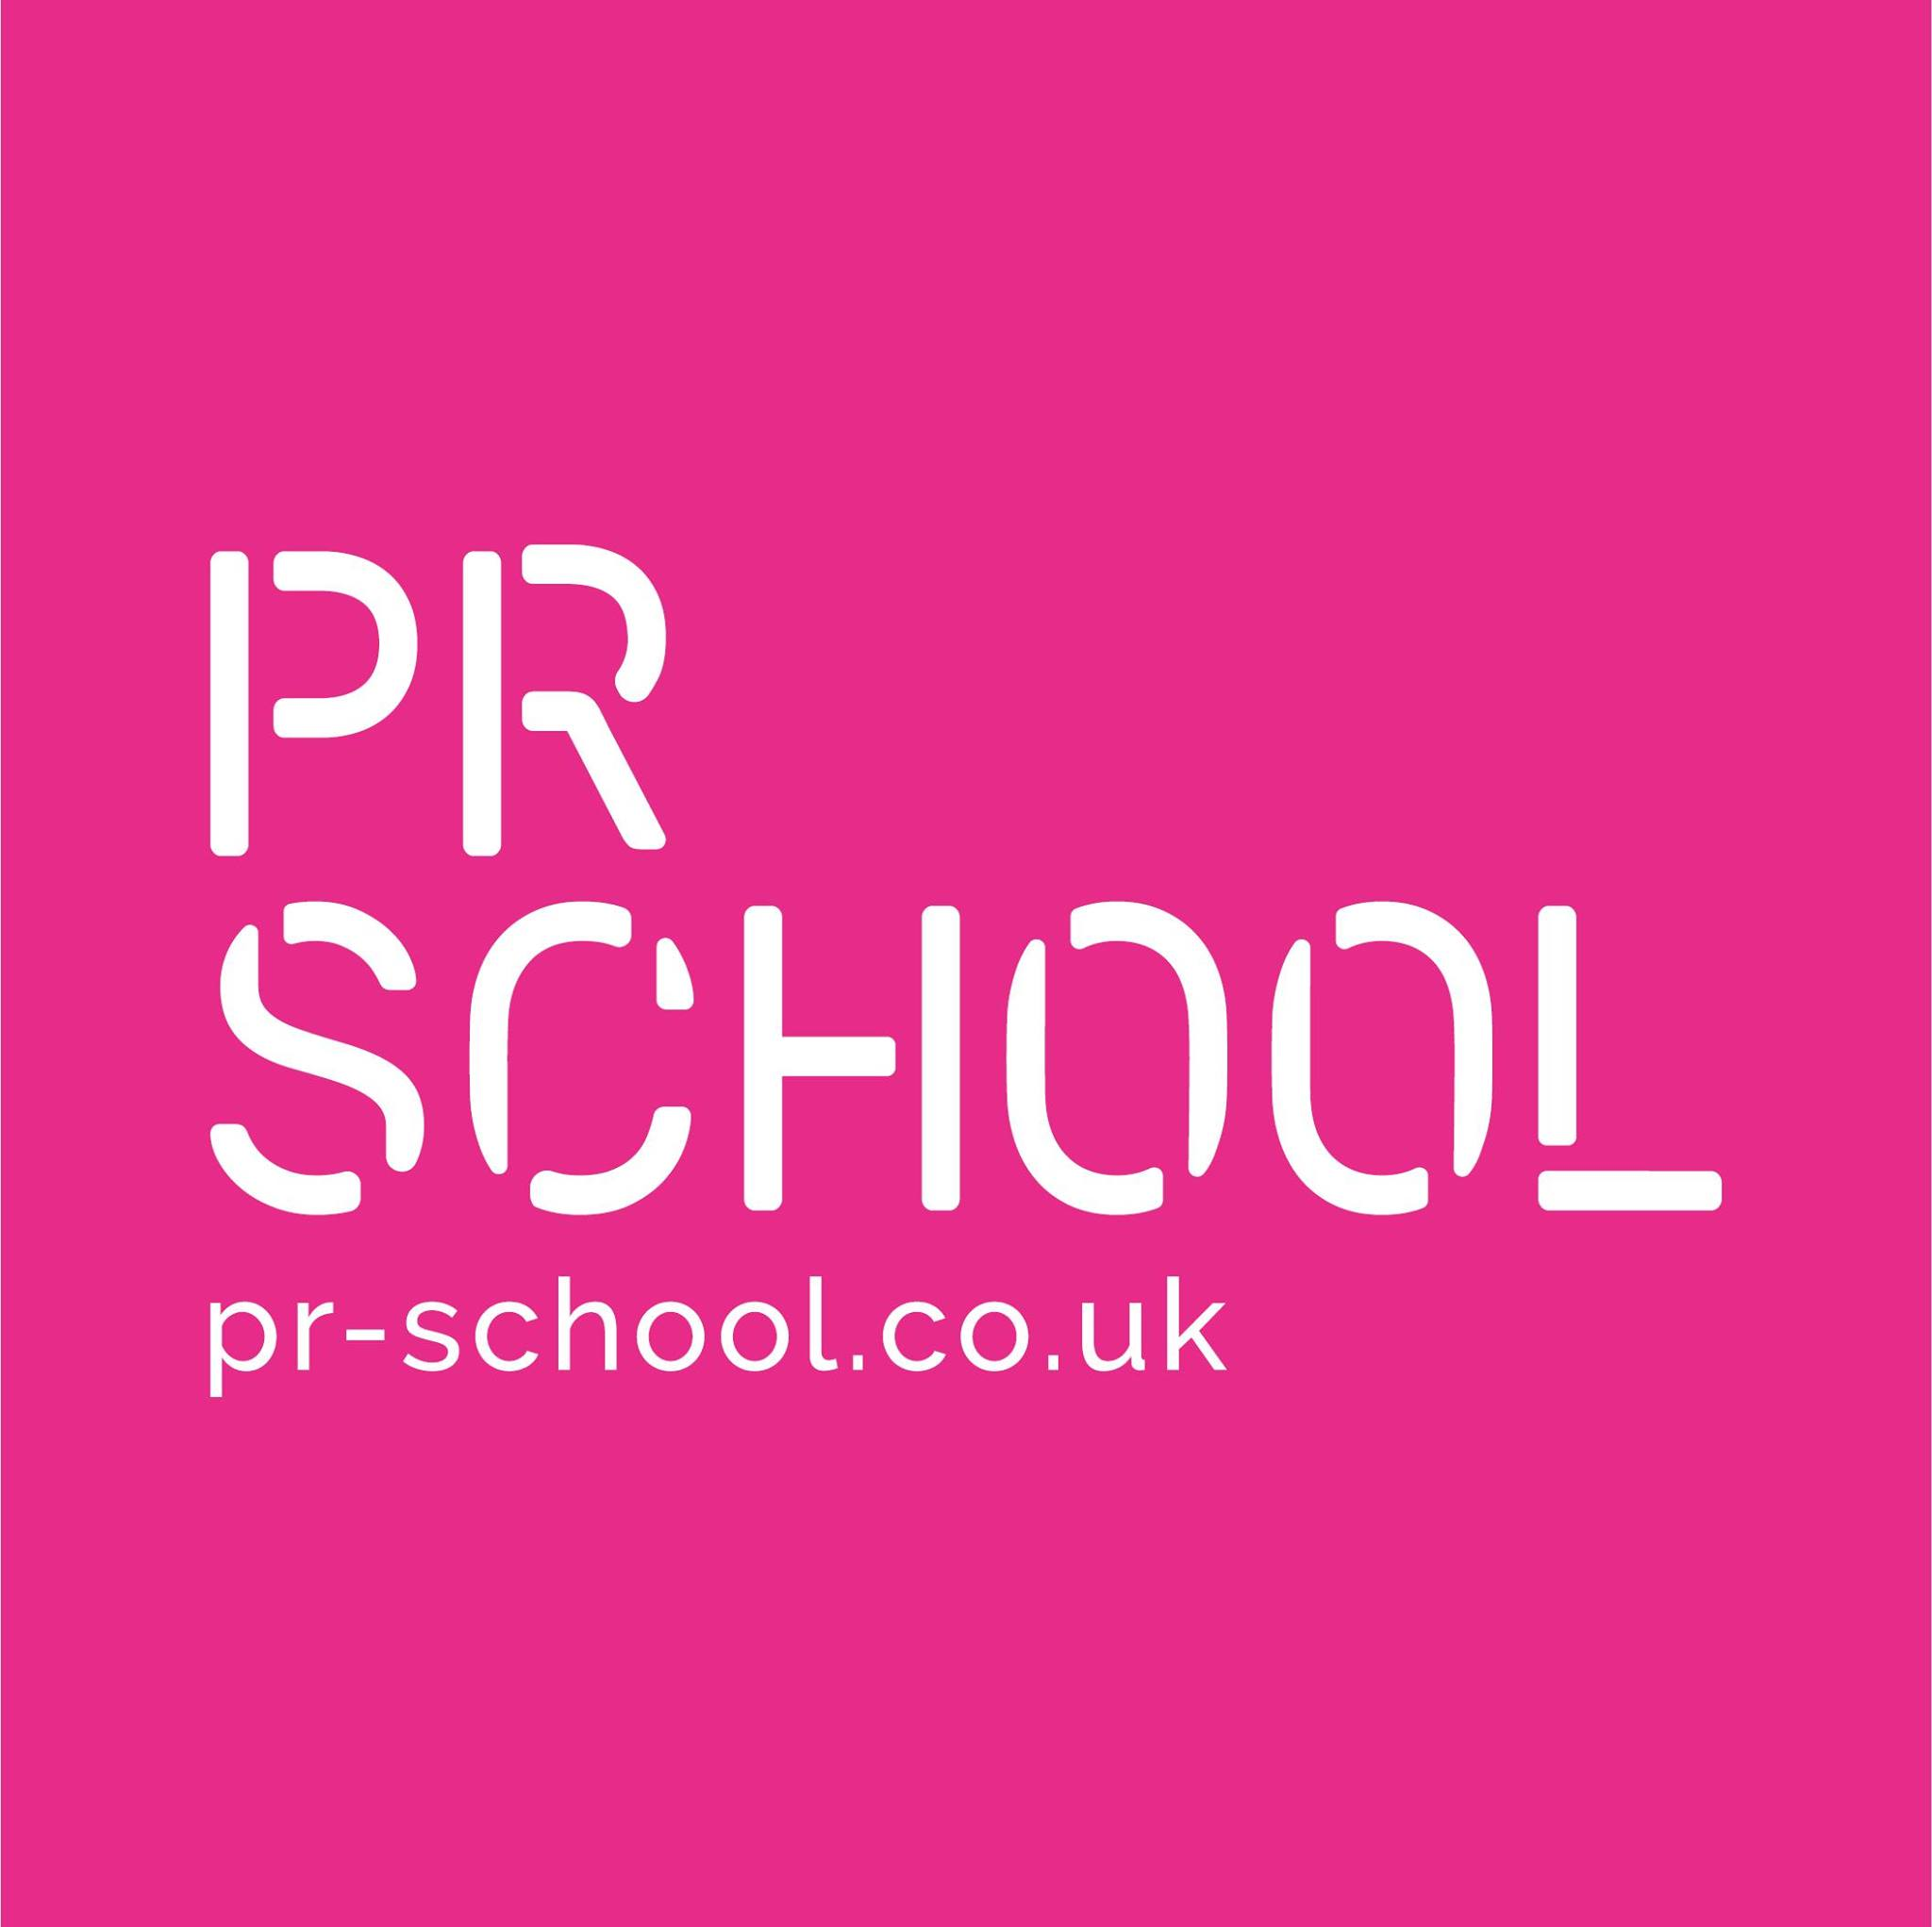 www.pr-school.co.uk